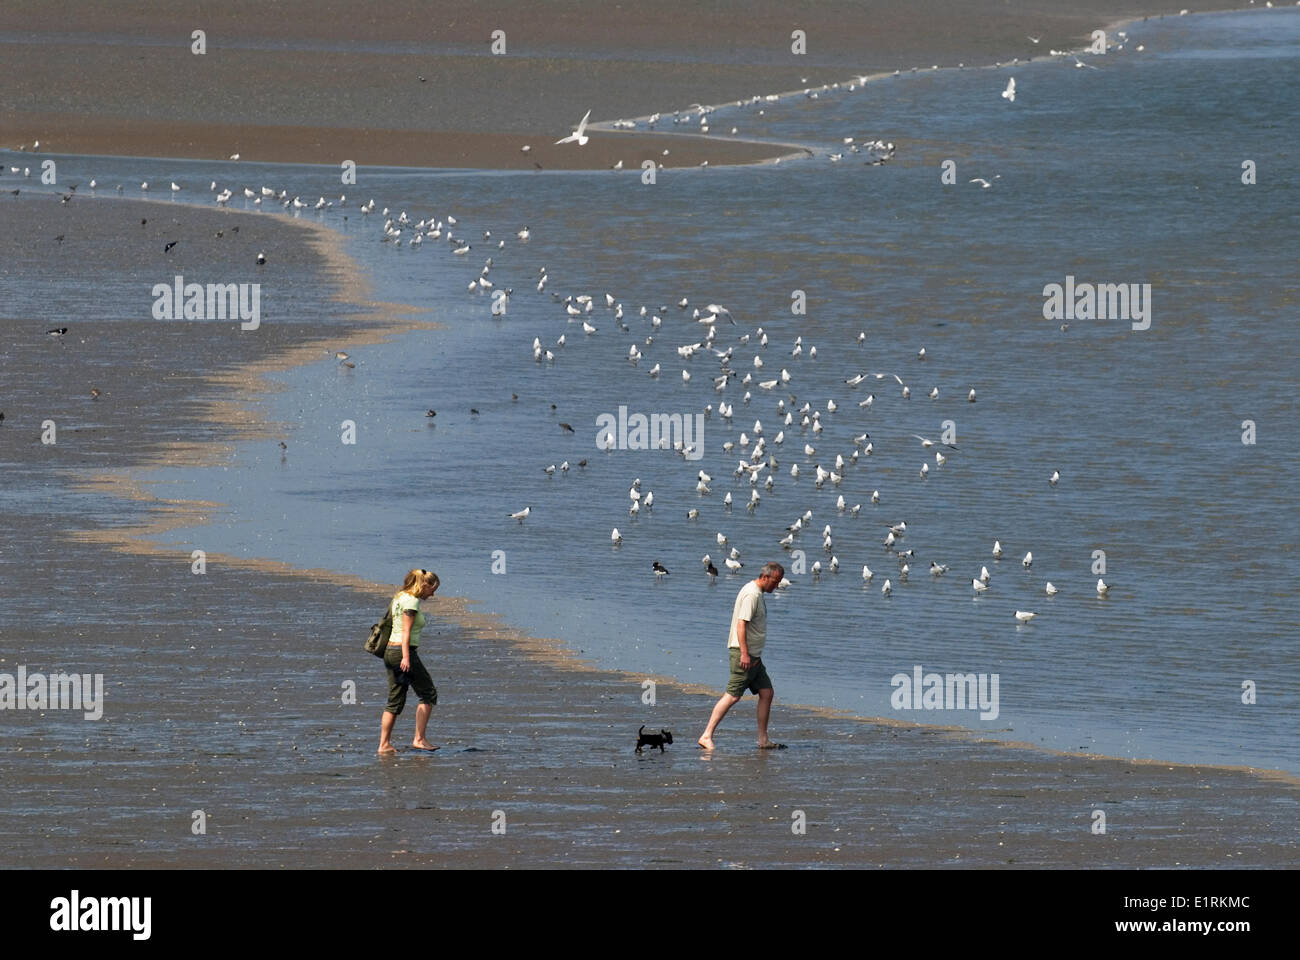 disturbance of birds by people walking their dog - Stock Image